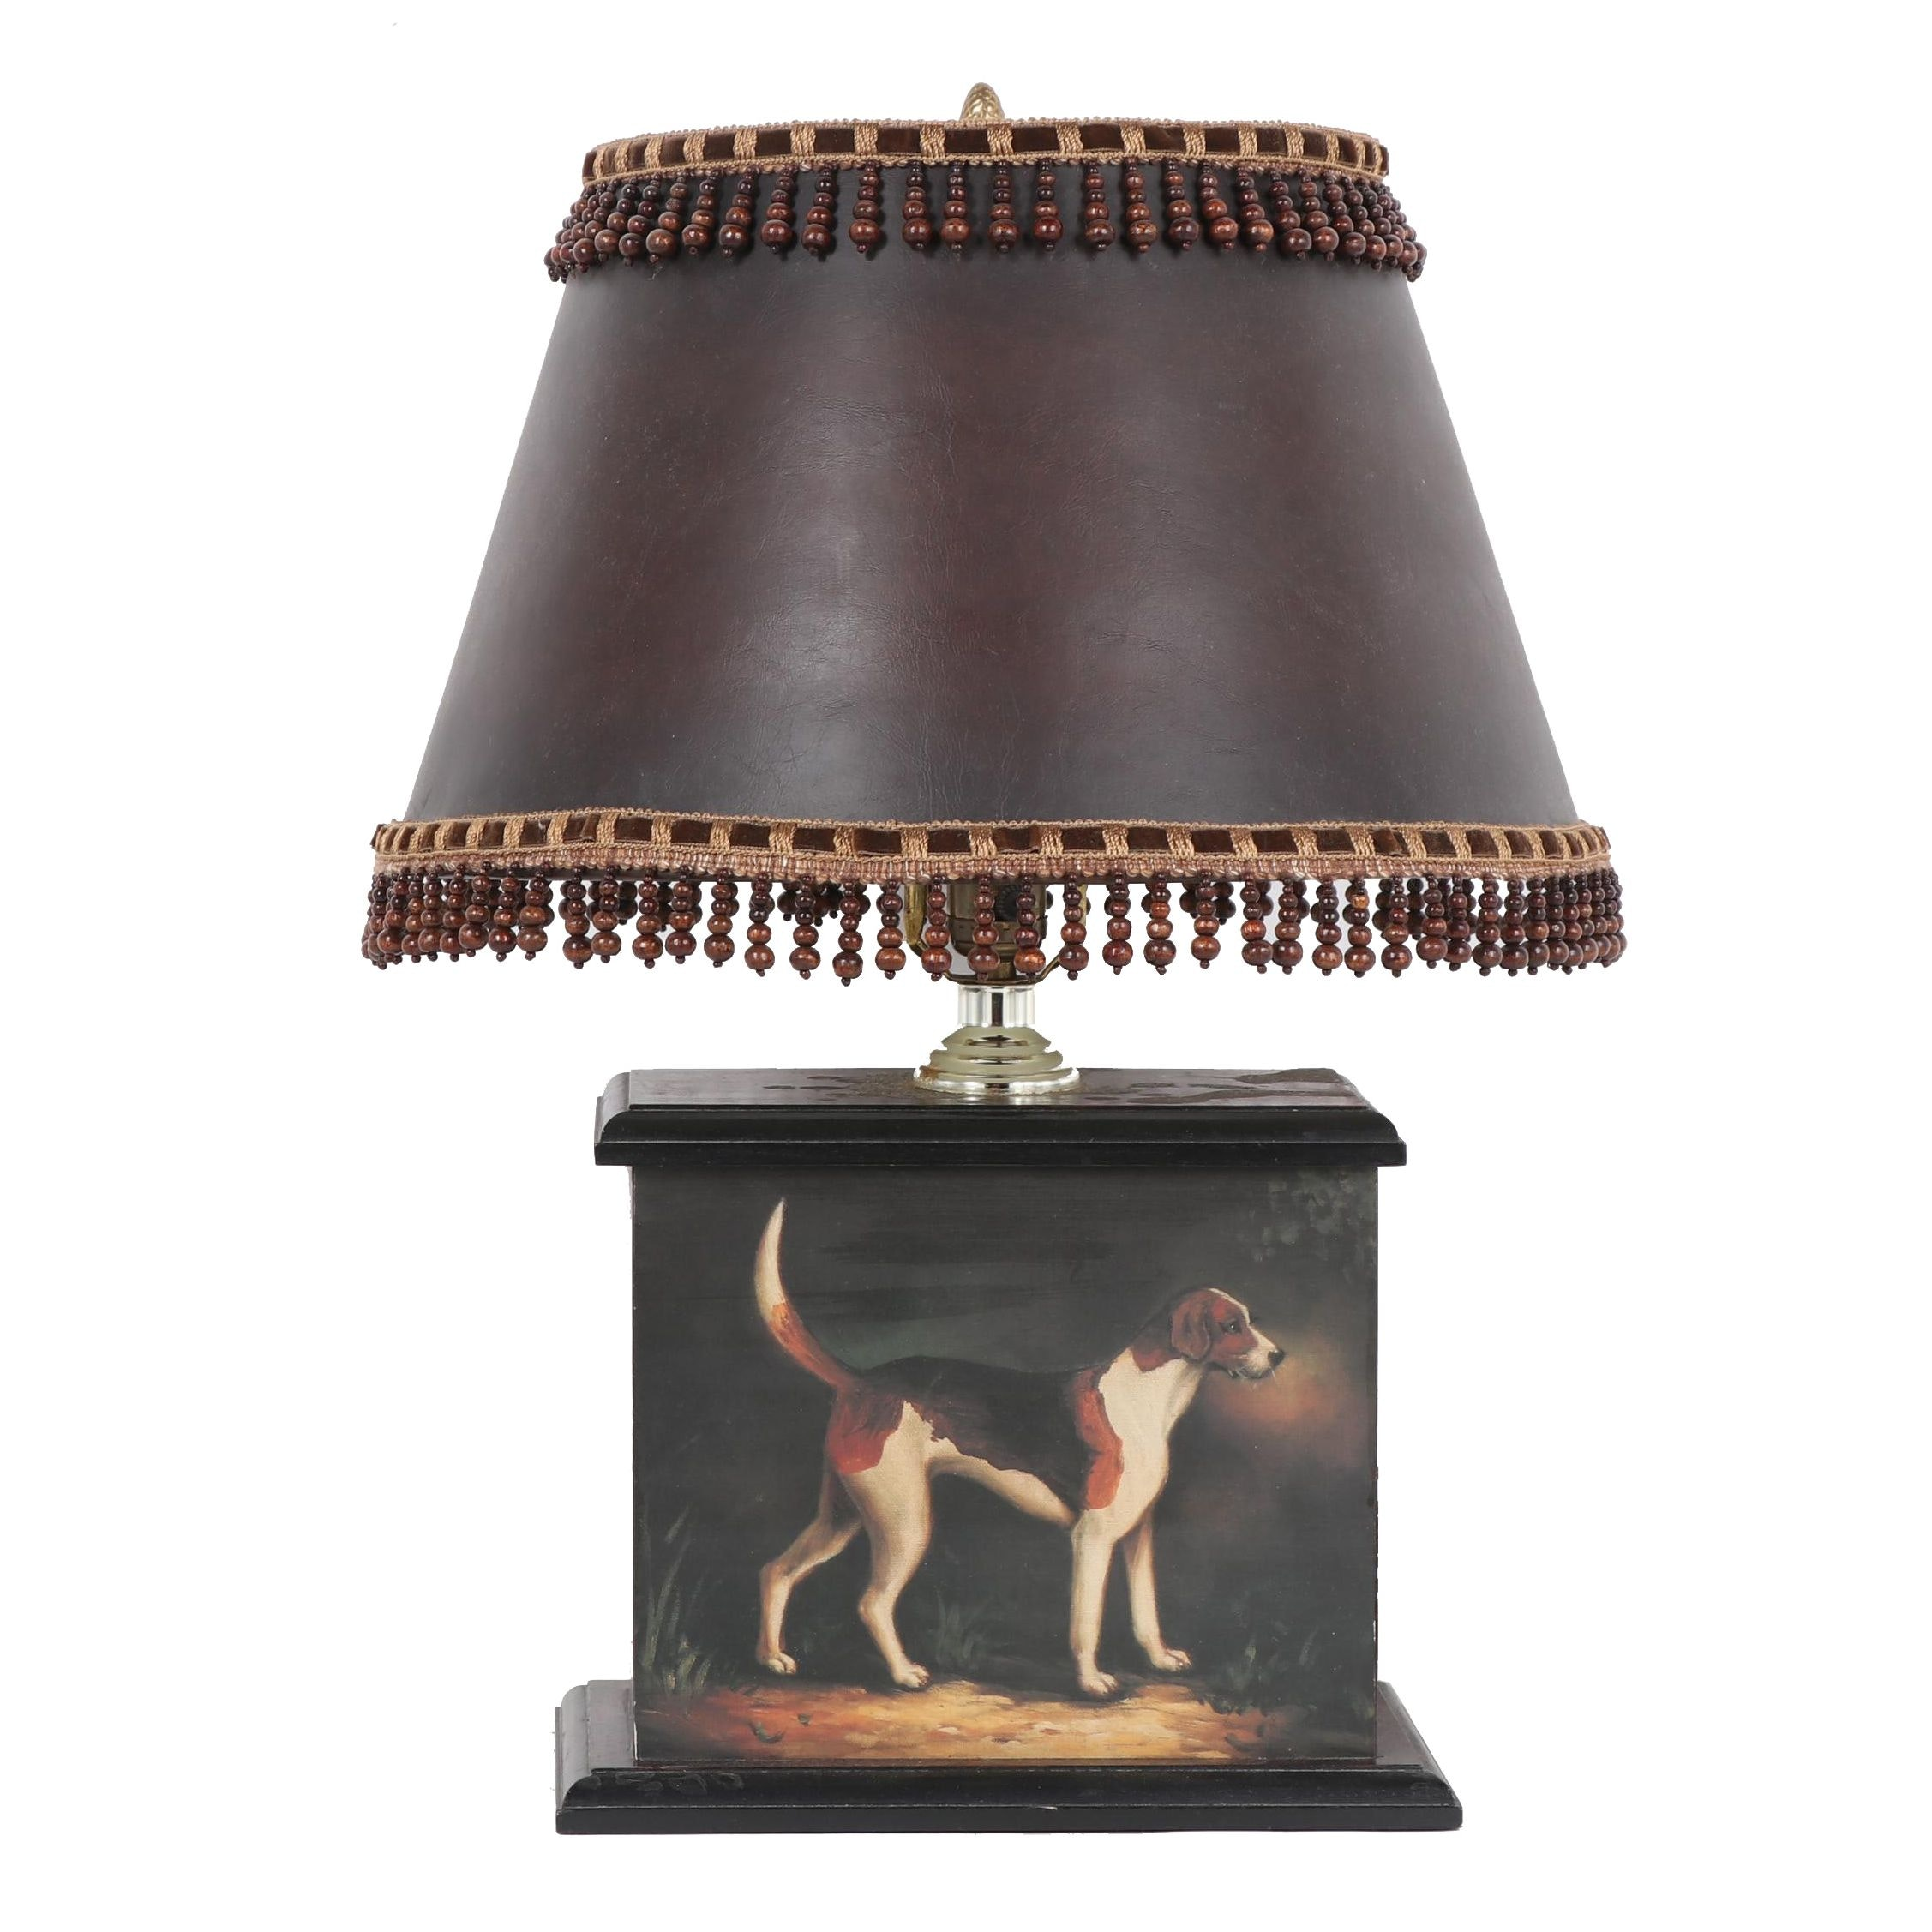 Decorative Hound Table Lamp